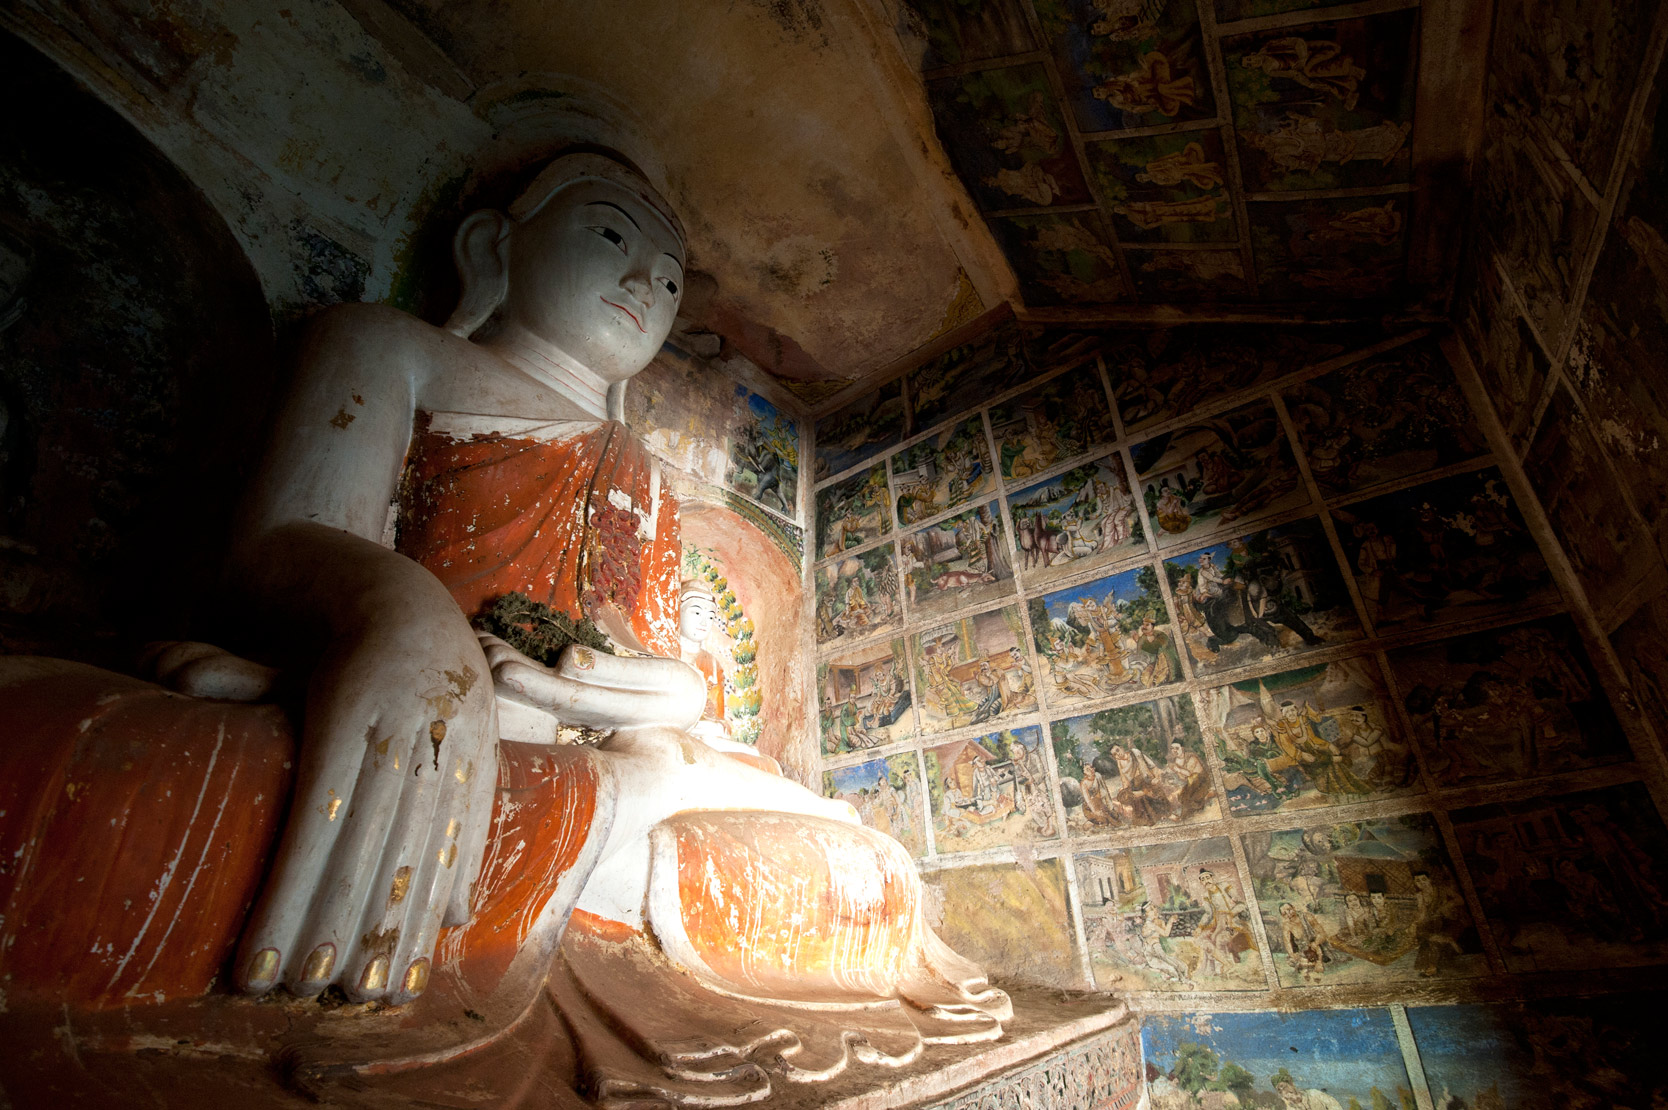 18th century paintings on the walls, Monywa, Sagaing District